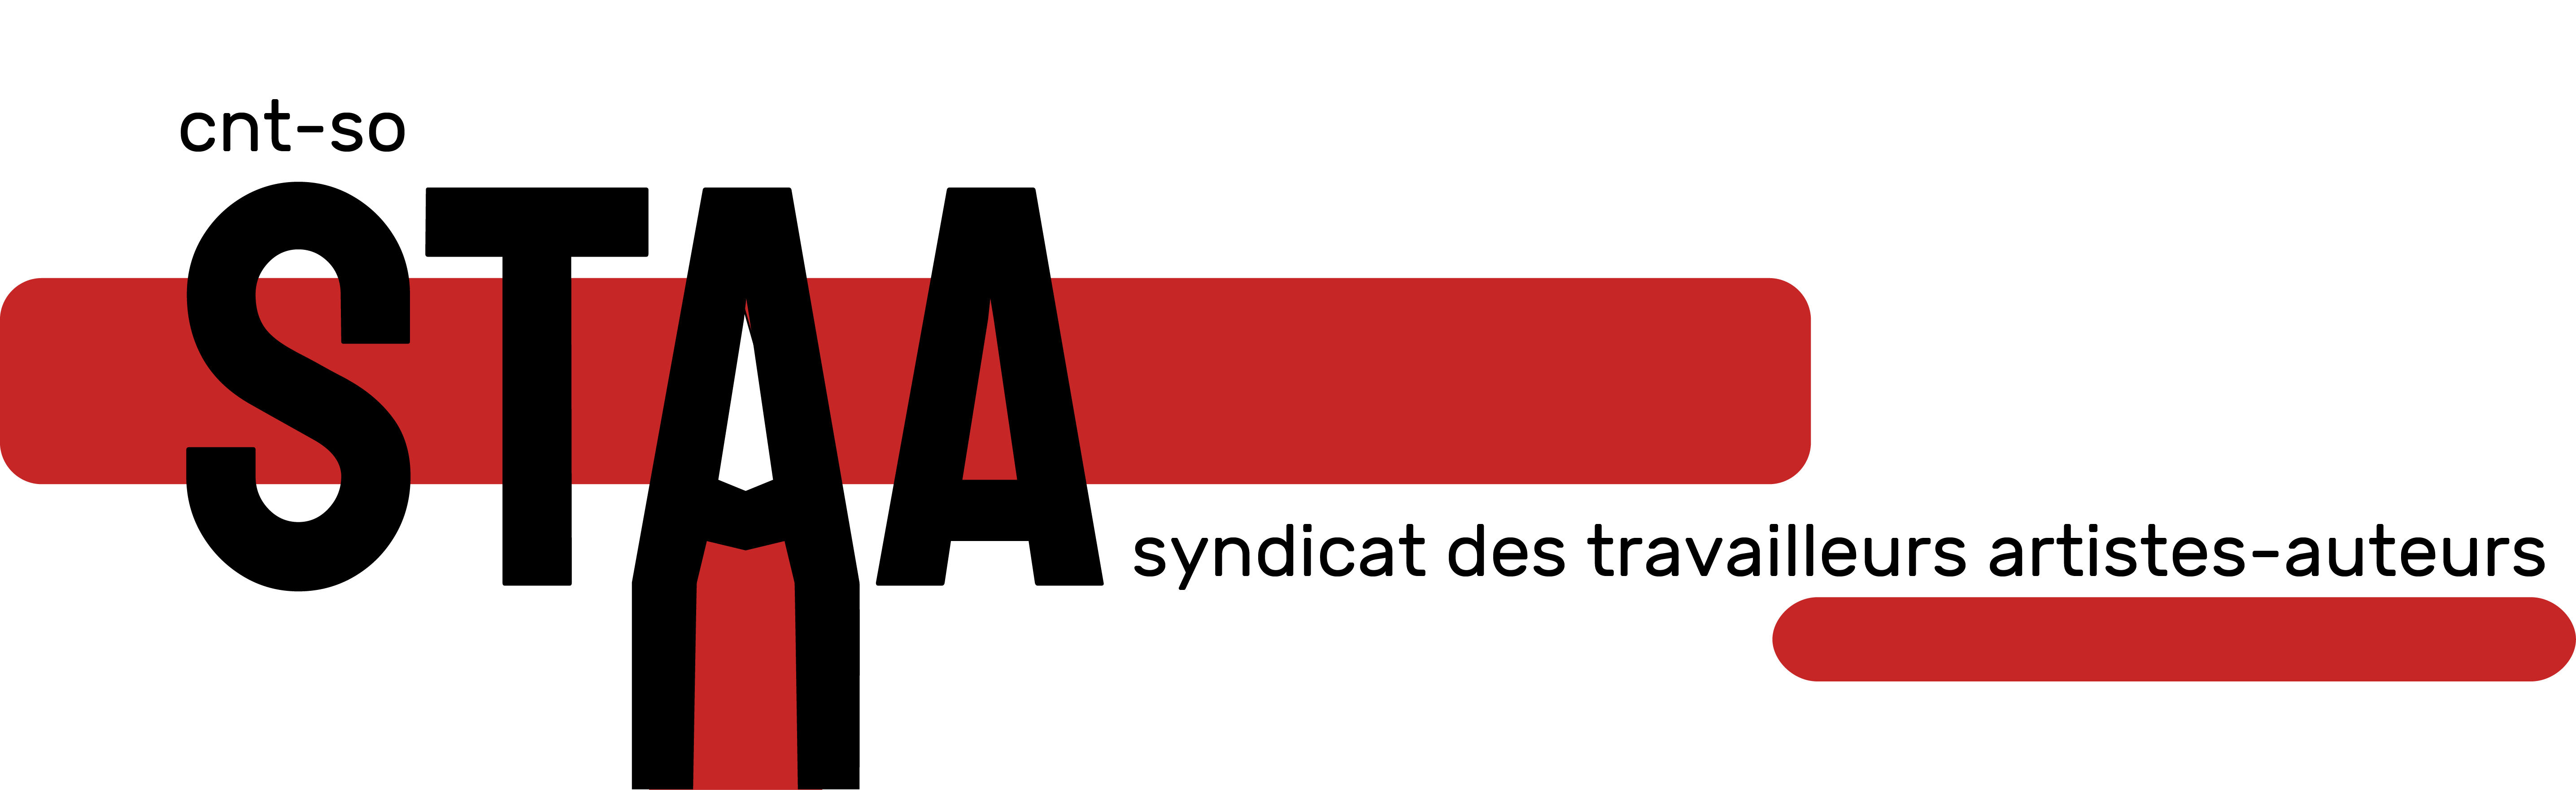 logo_staa-3.png